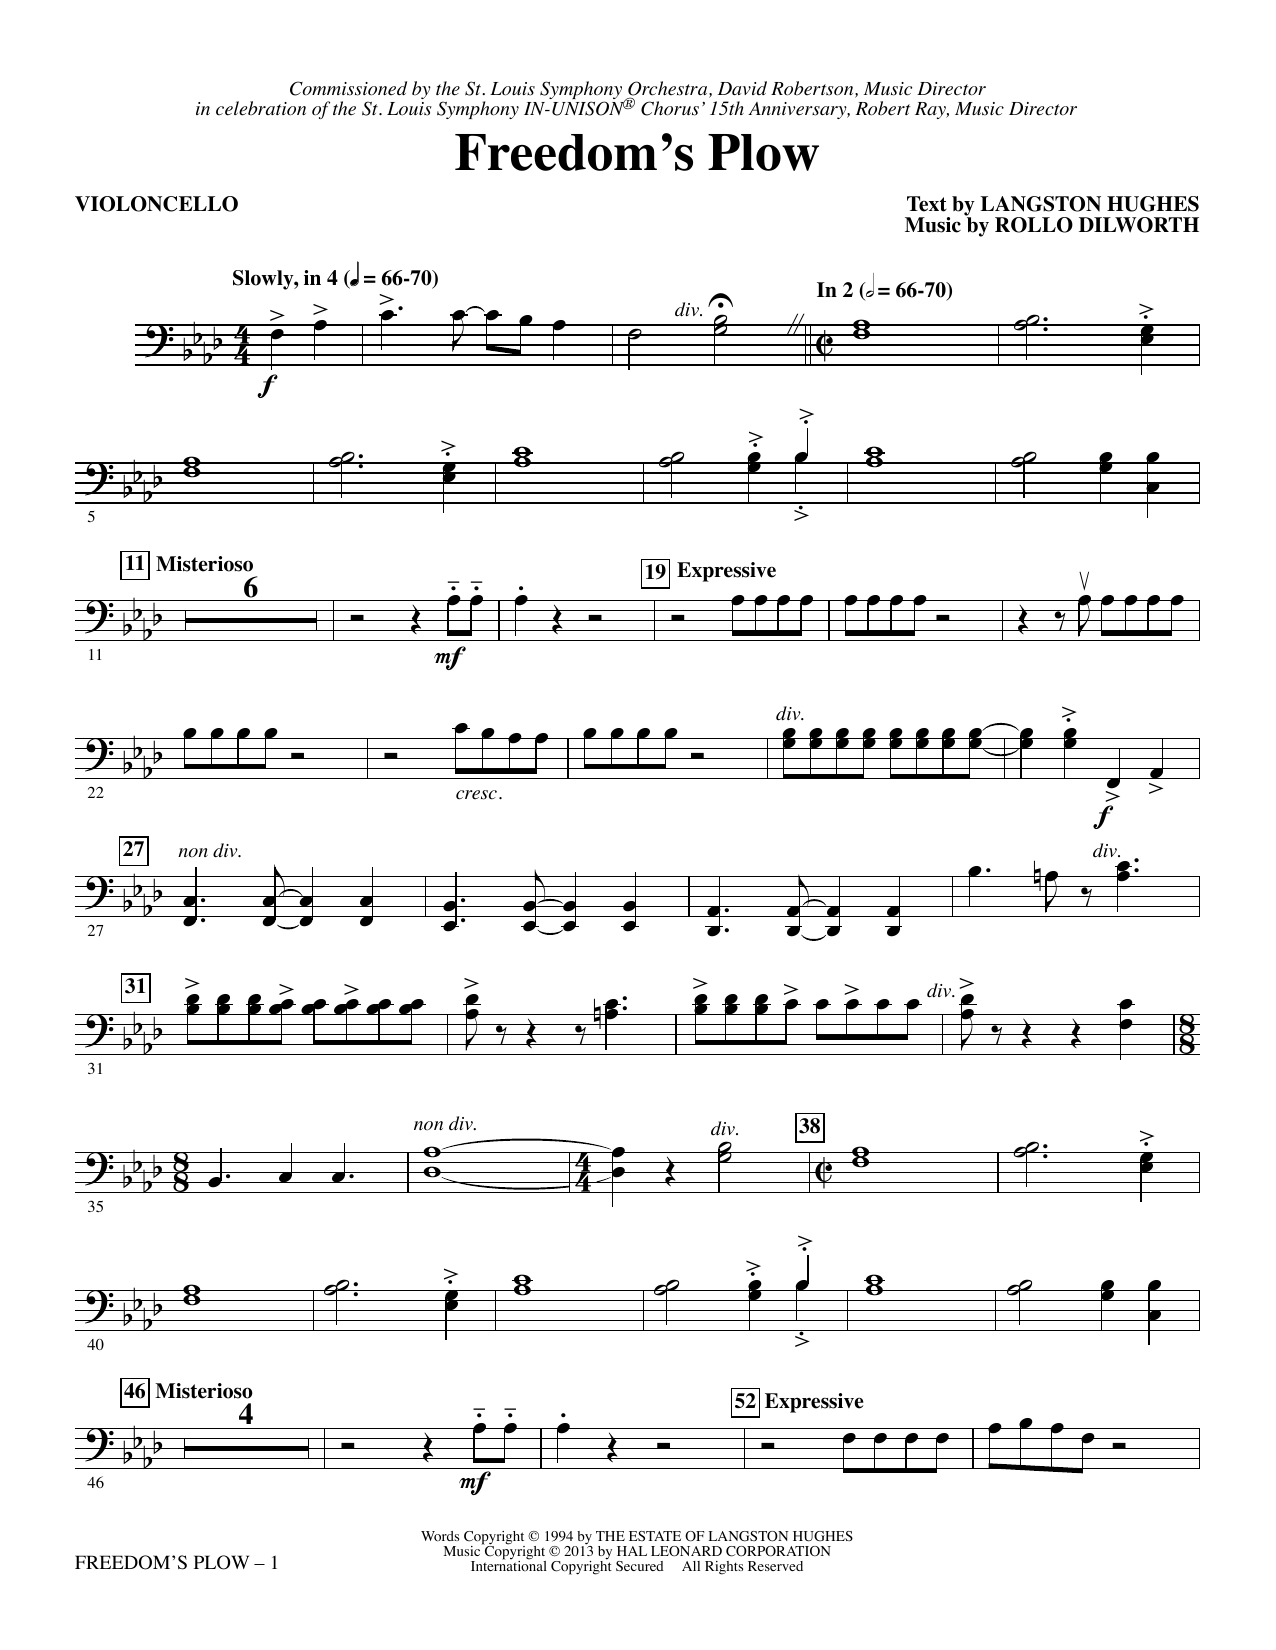 Rollo Dilworth Freedom's Plow - Violoncello sheet music notes and chords. Download Printable PDF.